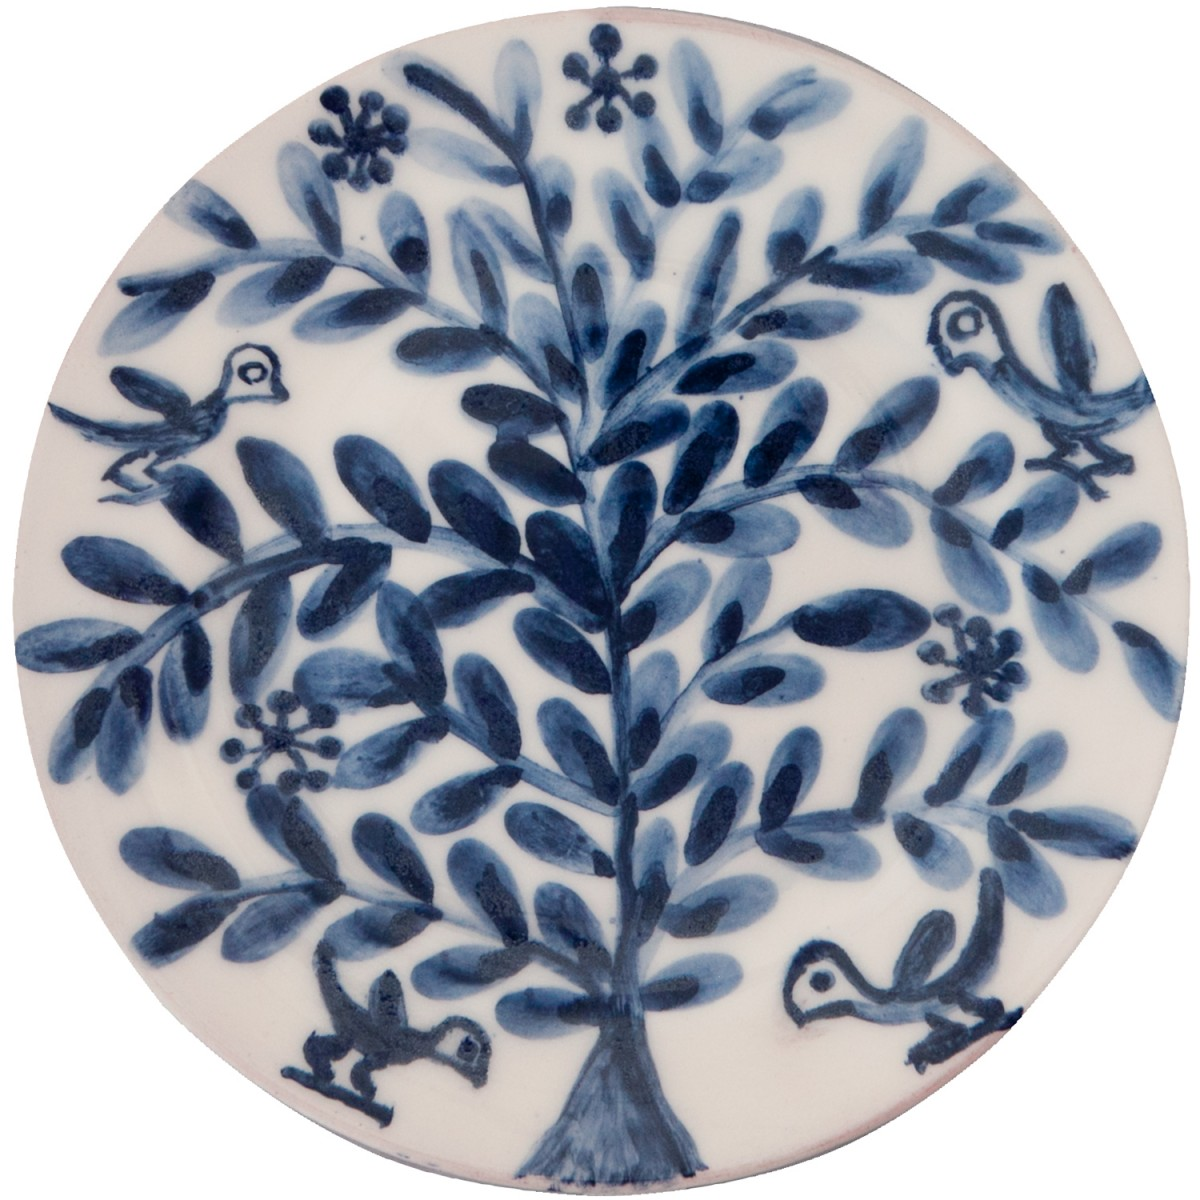 Hand painted Decorative Blue and White Plates-Birds on Flower II-1